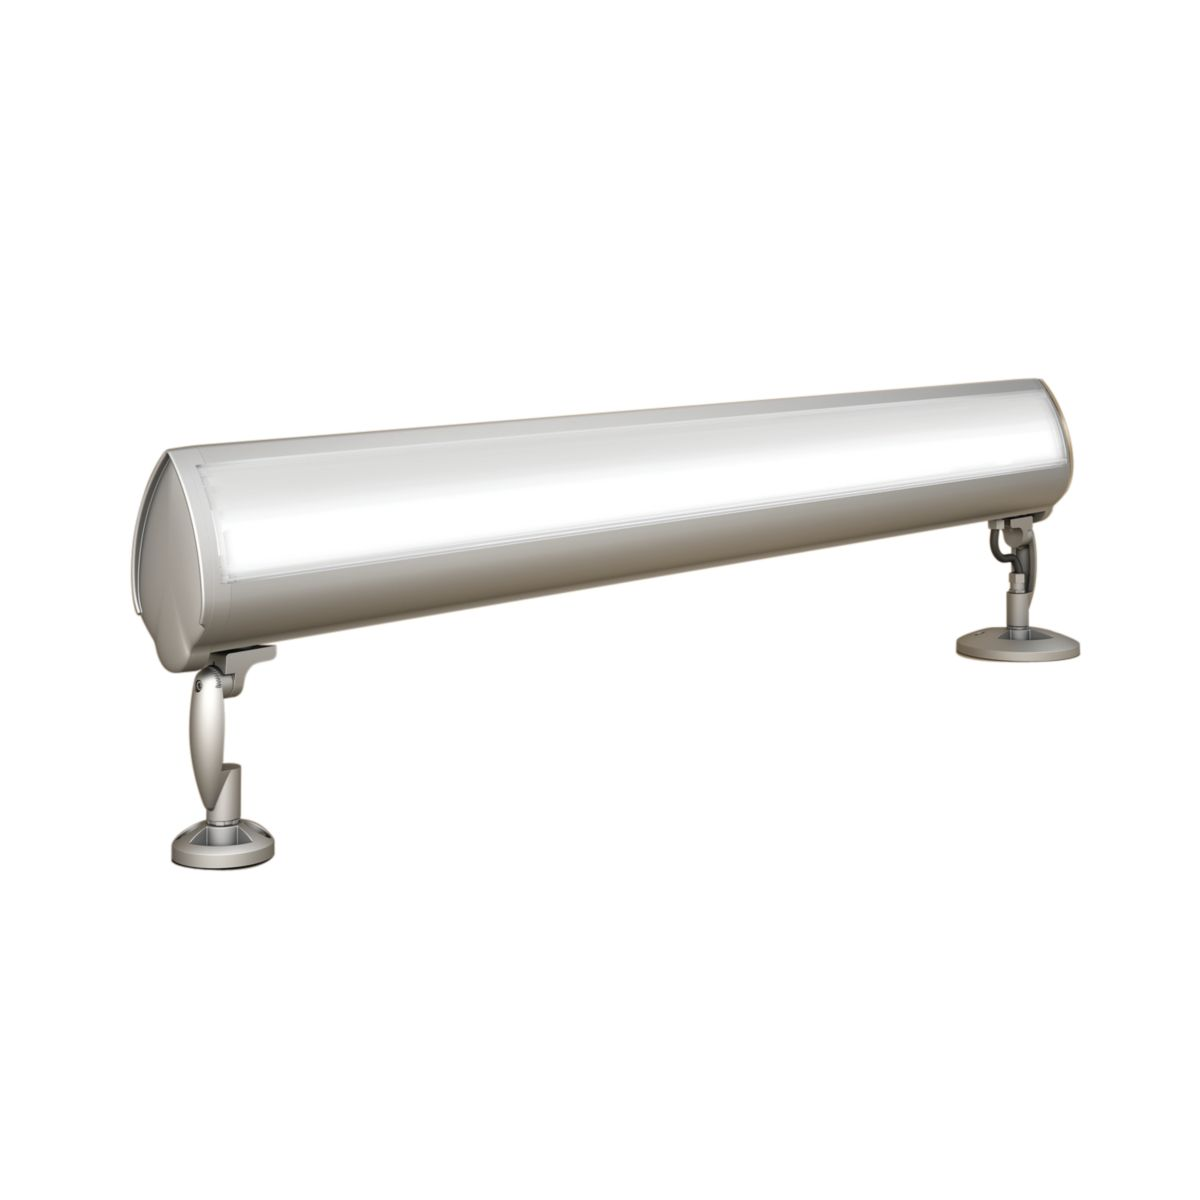 Arrowlinear LED – Individual and Continuous